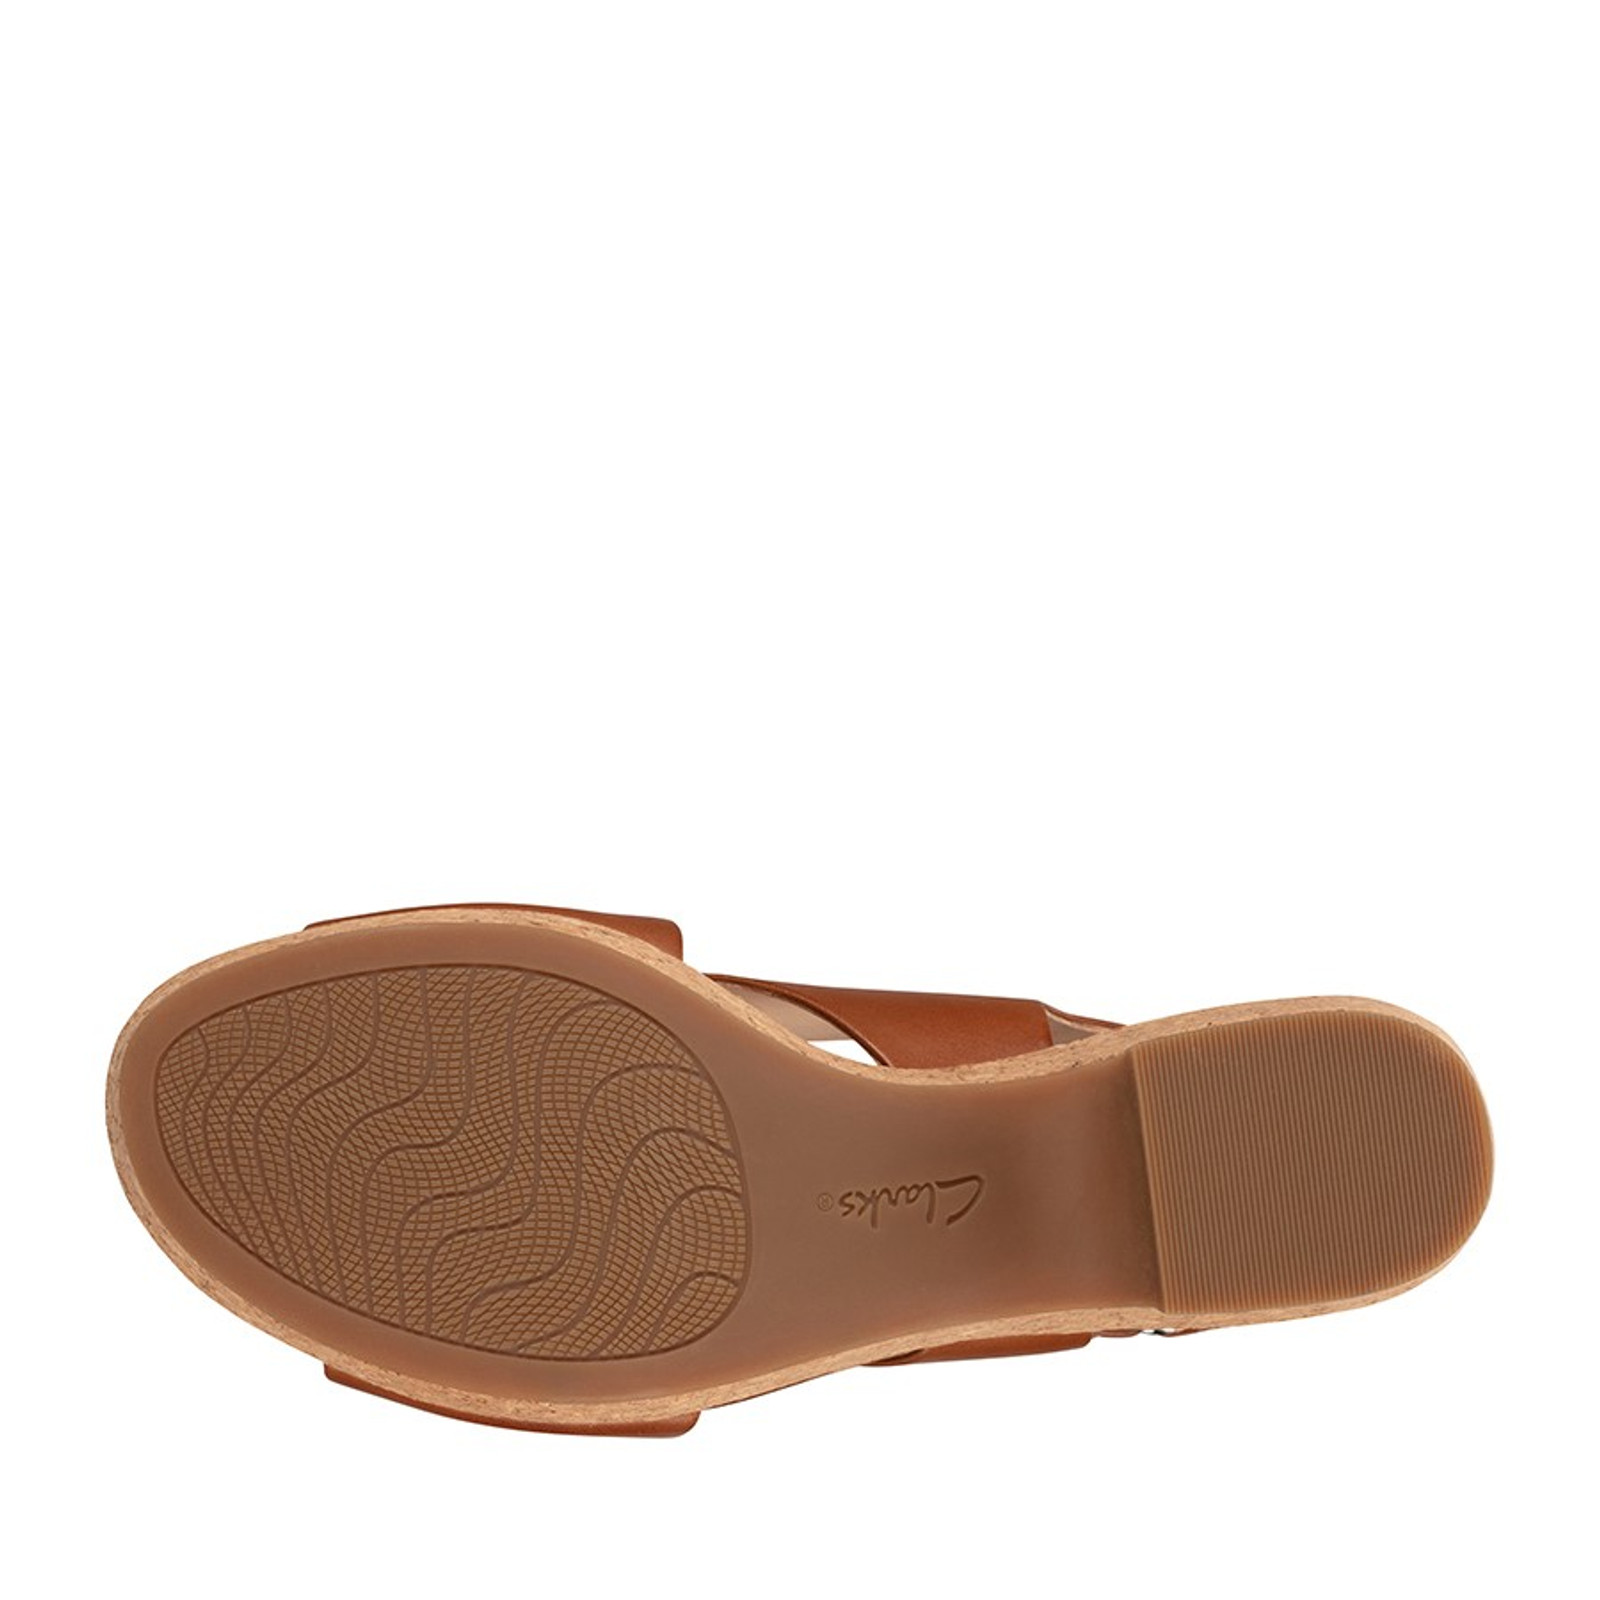 Clarks Womens MARITSA LARA Tan Leather